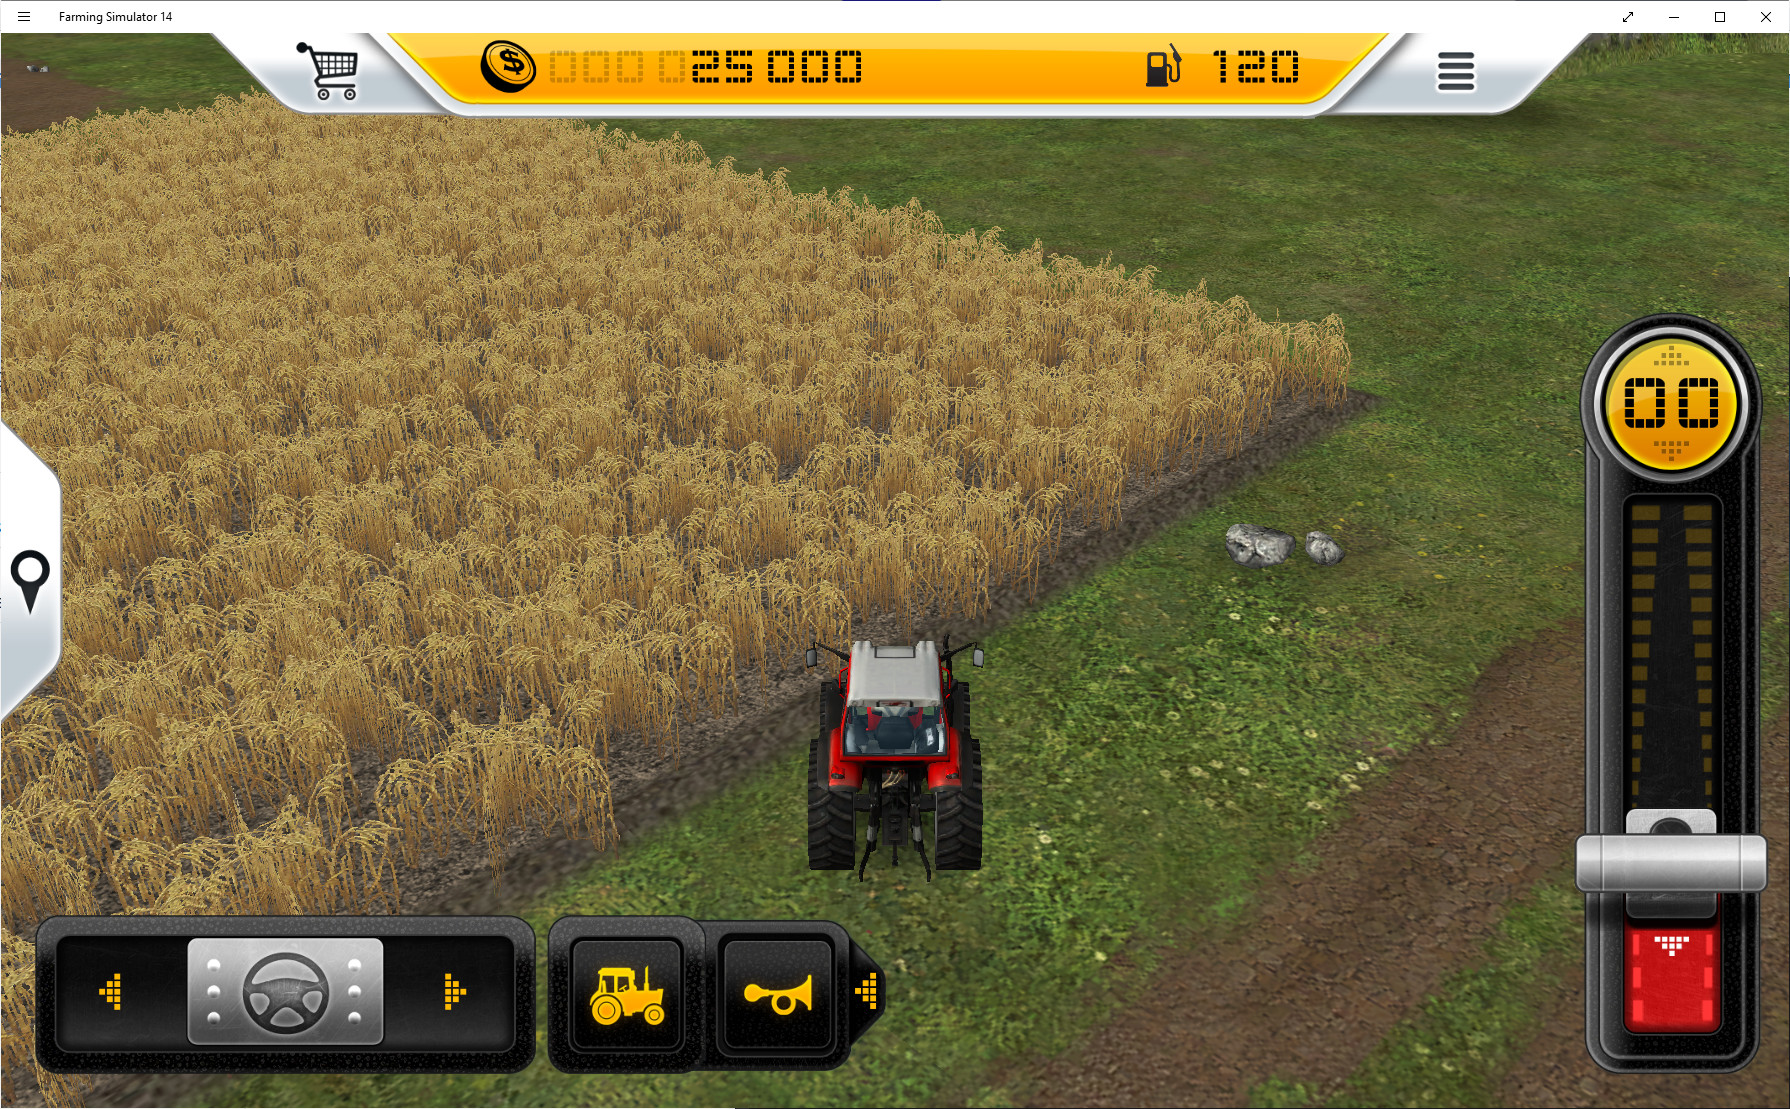 Screenshot 1 - Landwirtschafts-Simulator (Windows-10-App)